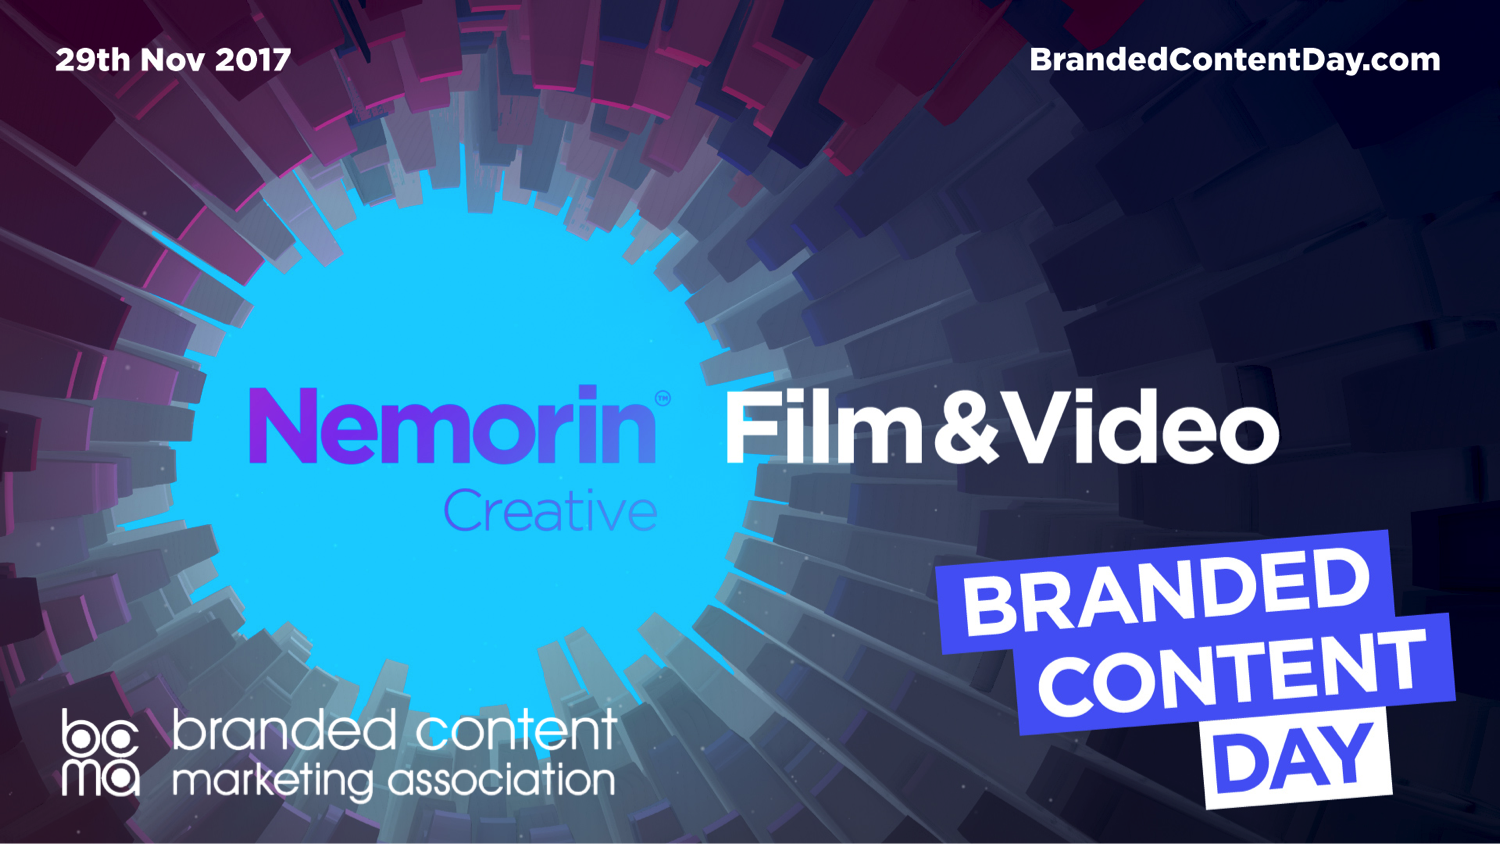 Branded Content Day is Wednesday 29th November!